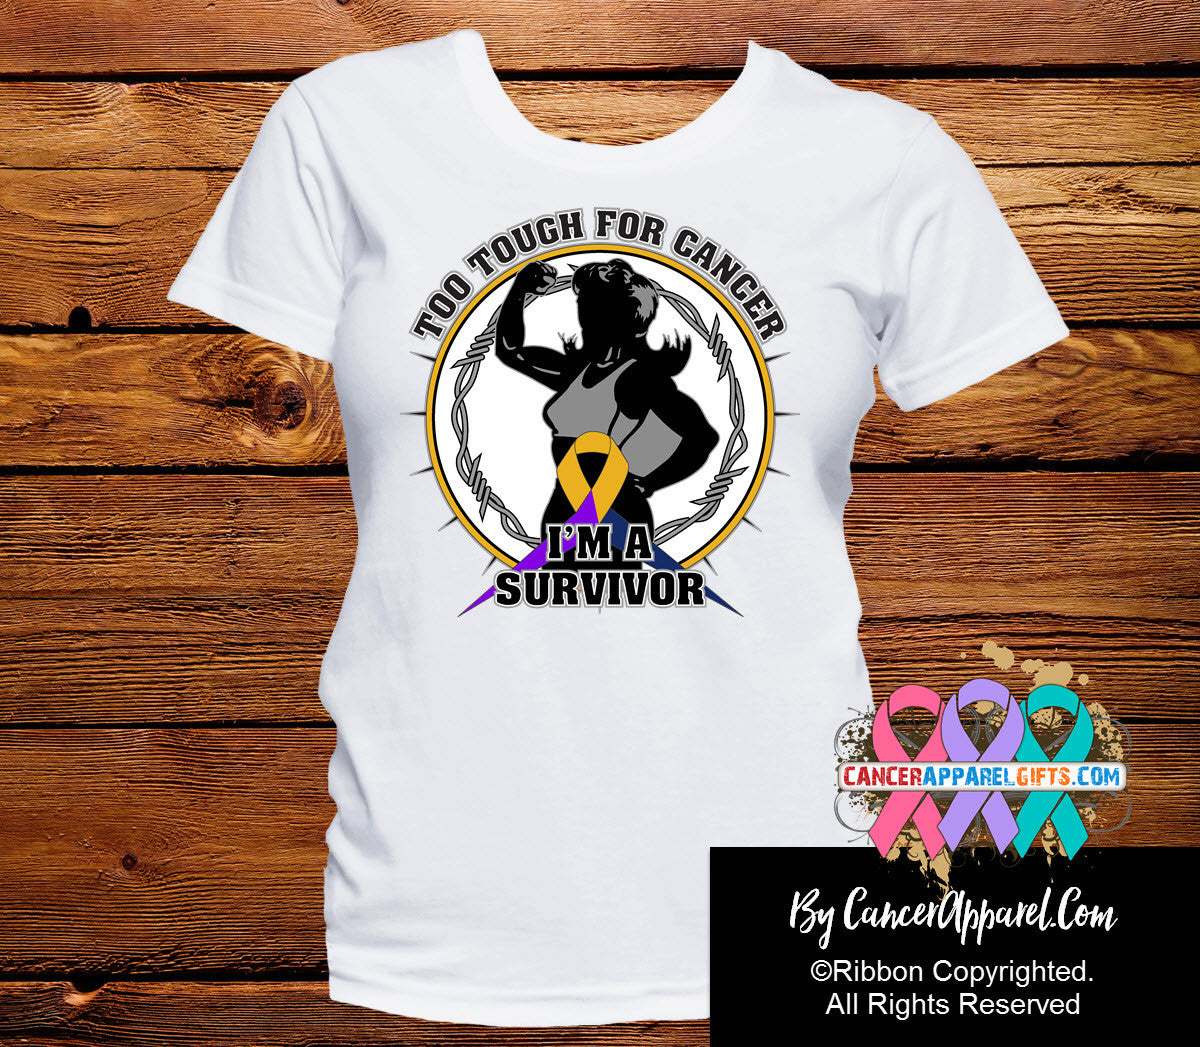 Too Tough For Bladder Cancer Shirts